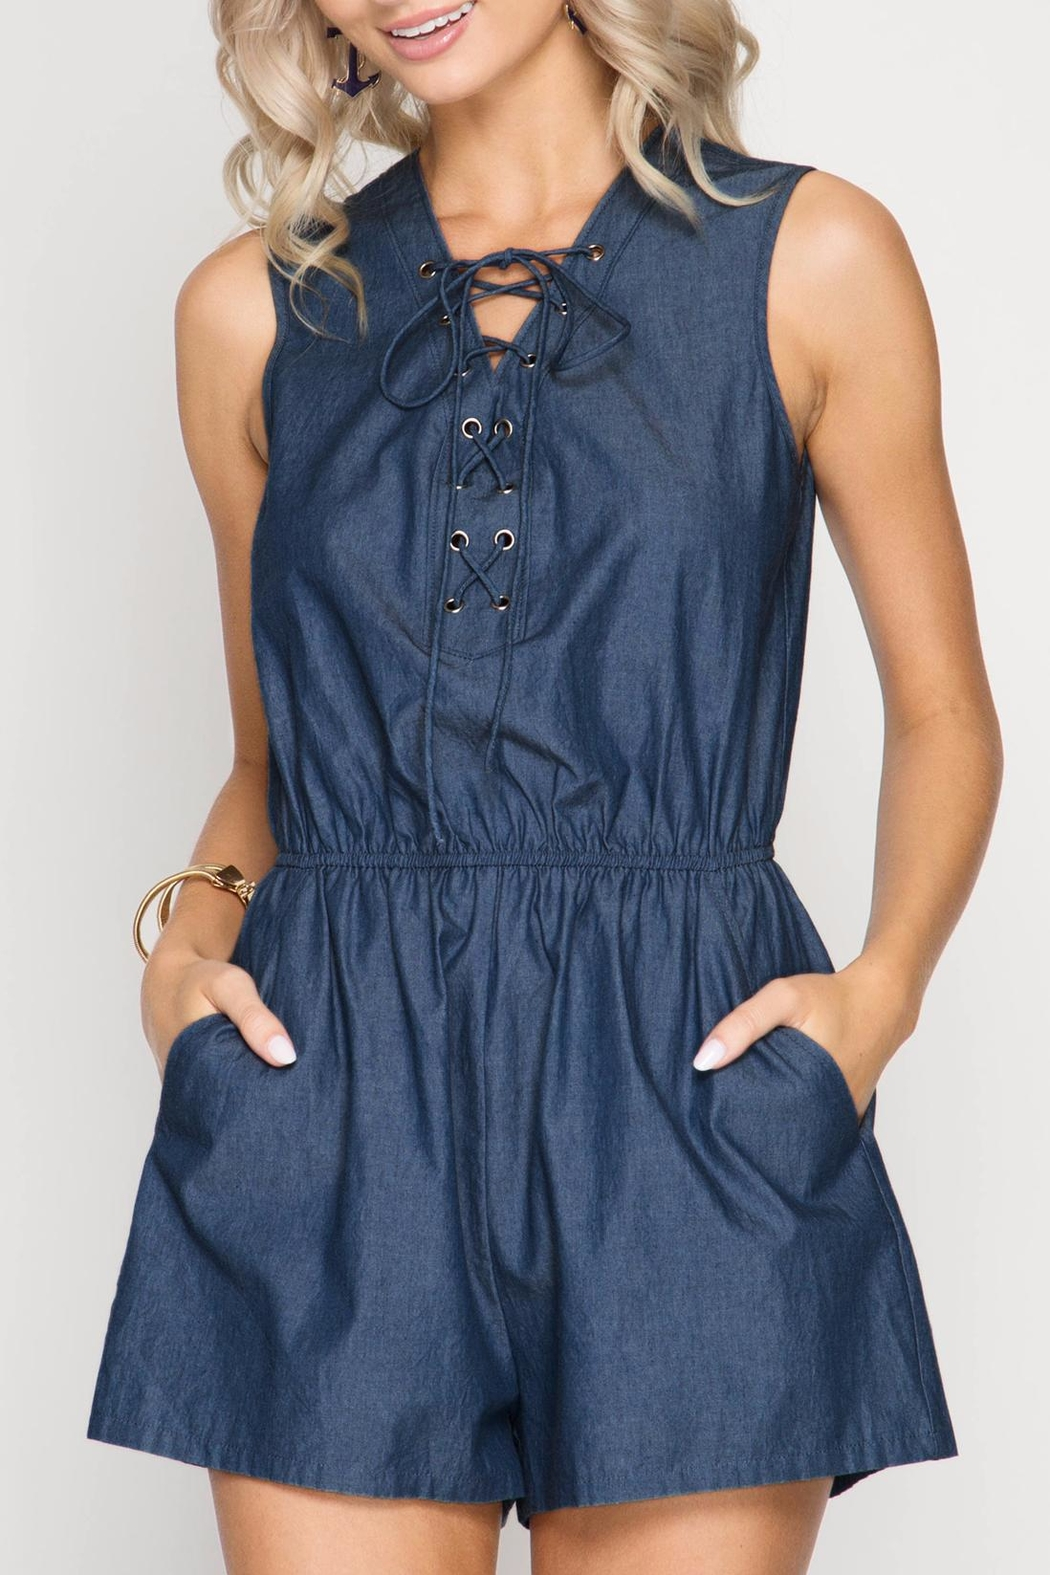 She + Sky Lace Up Chambray Romper - Main Image